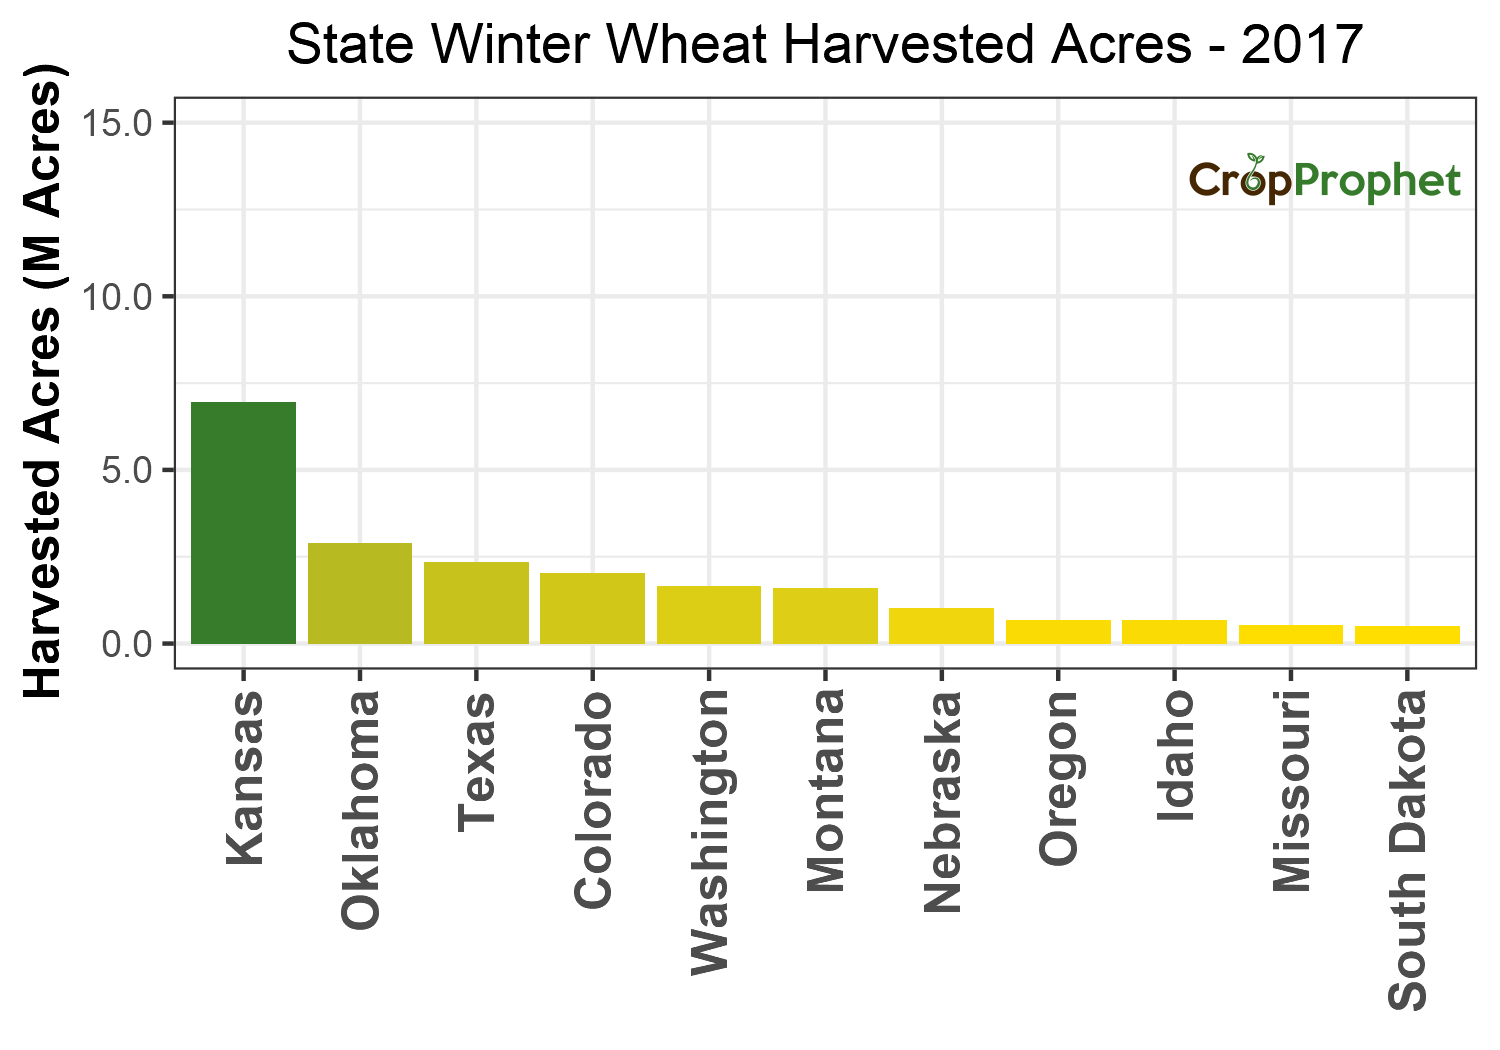 Winter wheat Harvested Acres by State - 2017 Rankings